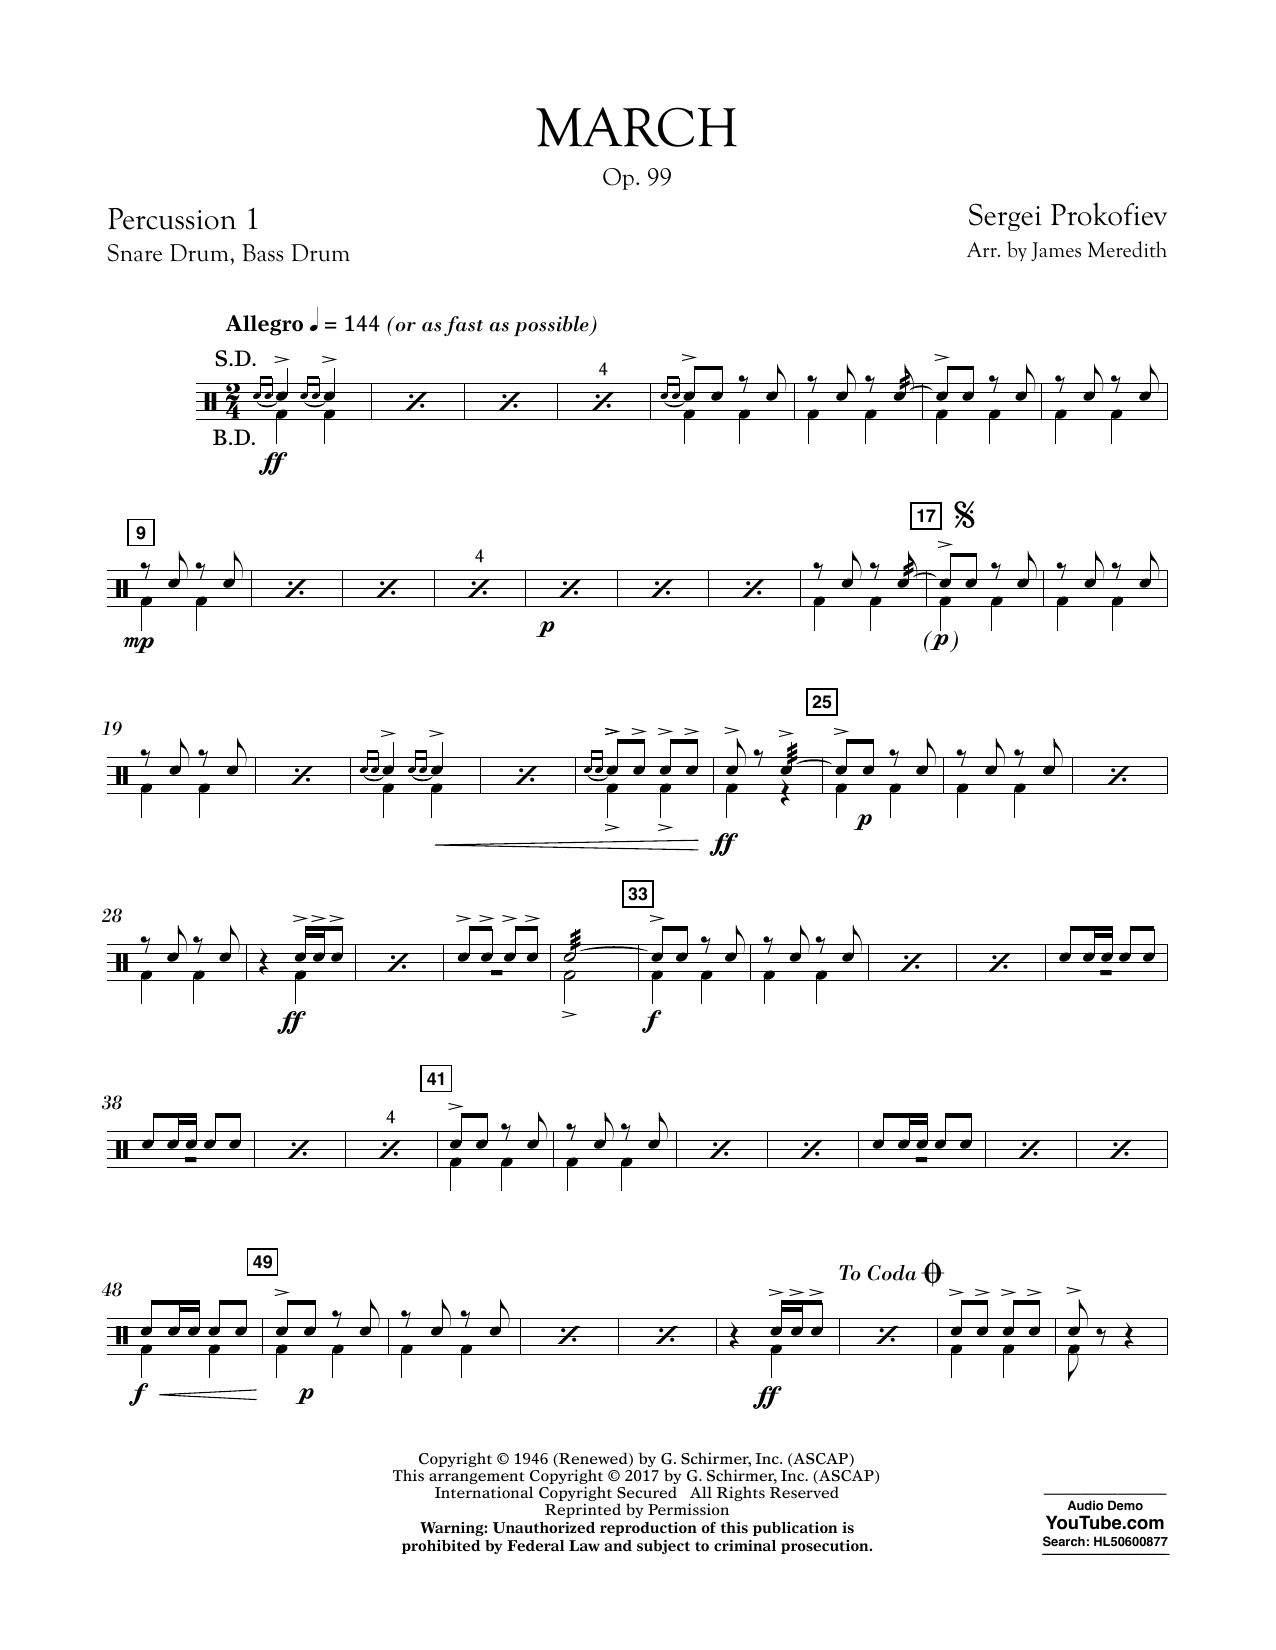 March, Op. 99 - Percussion 1 Partition Digitale